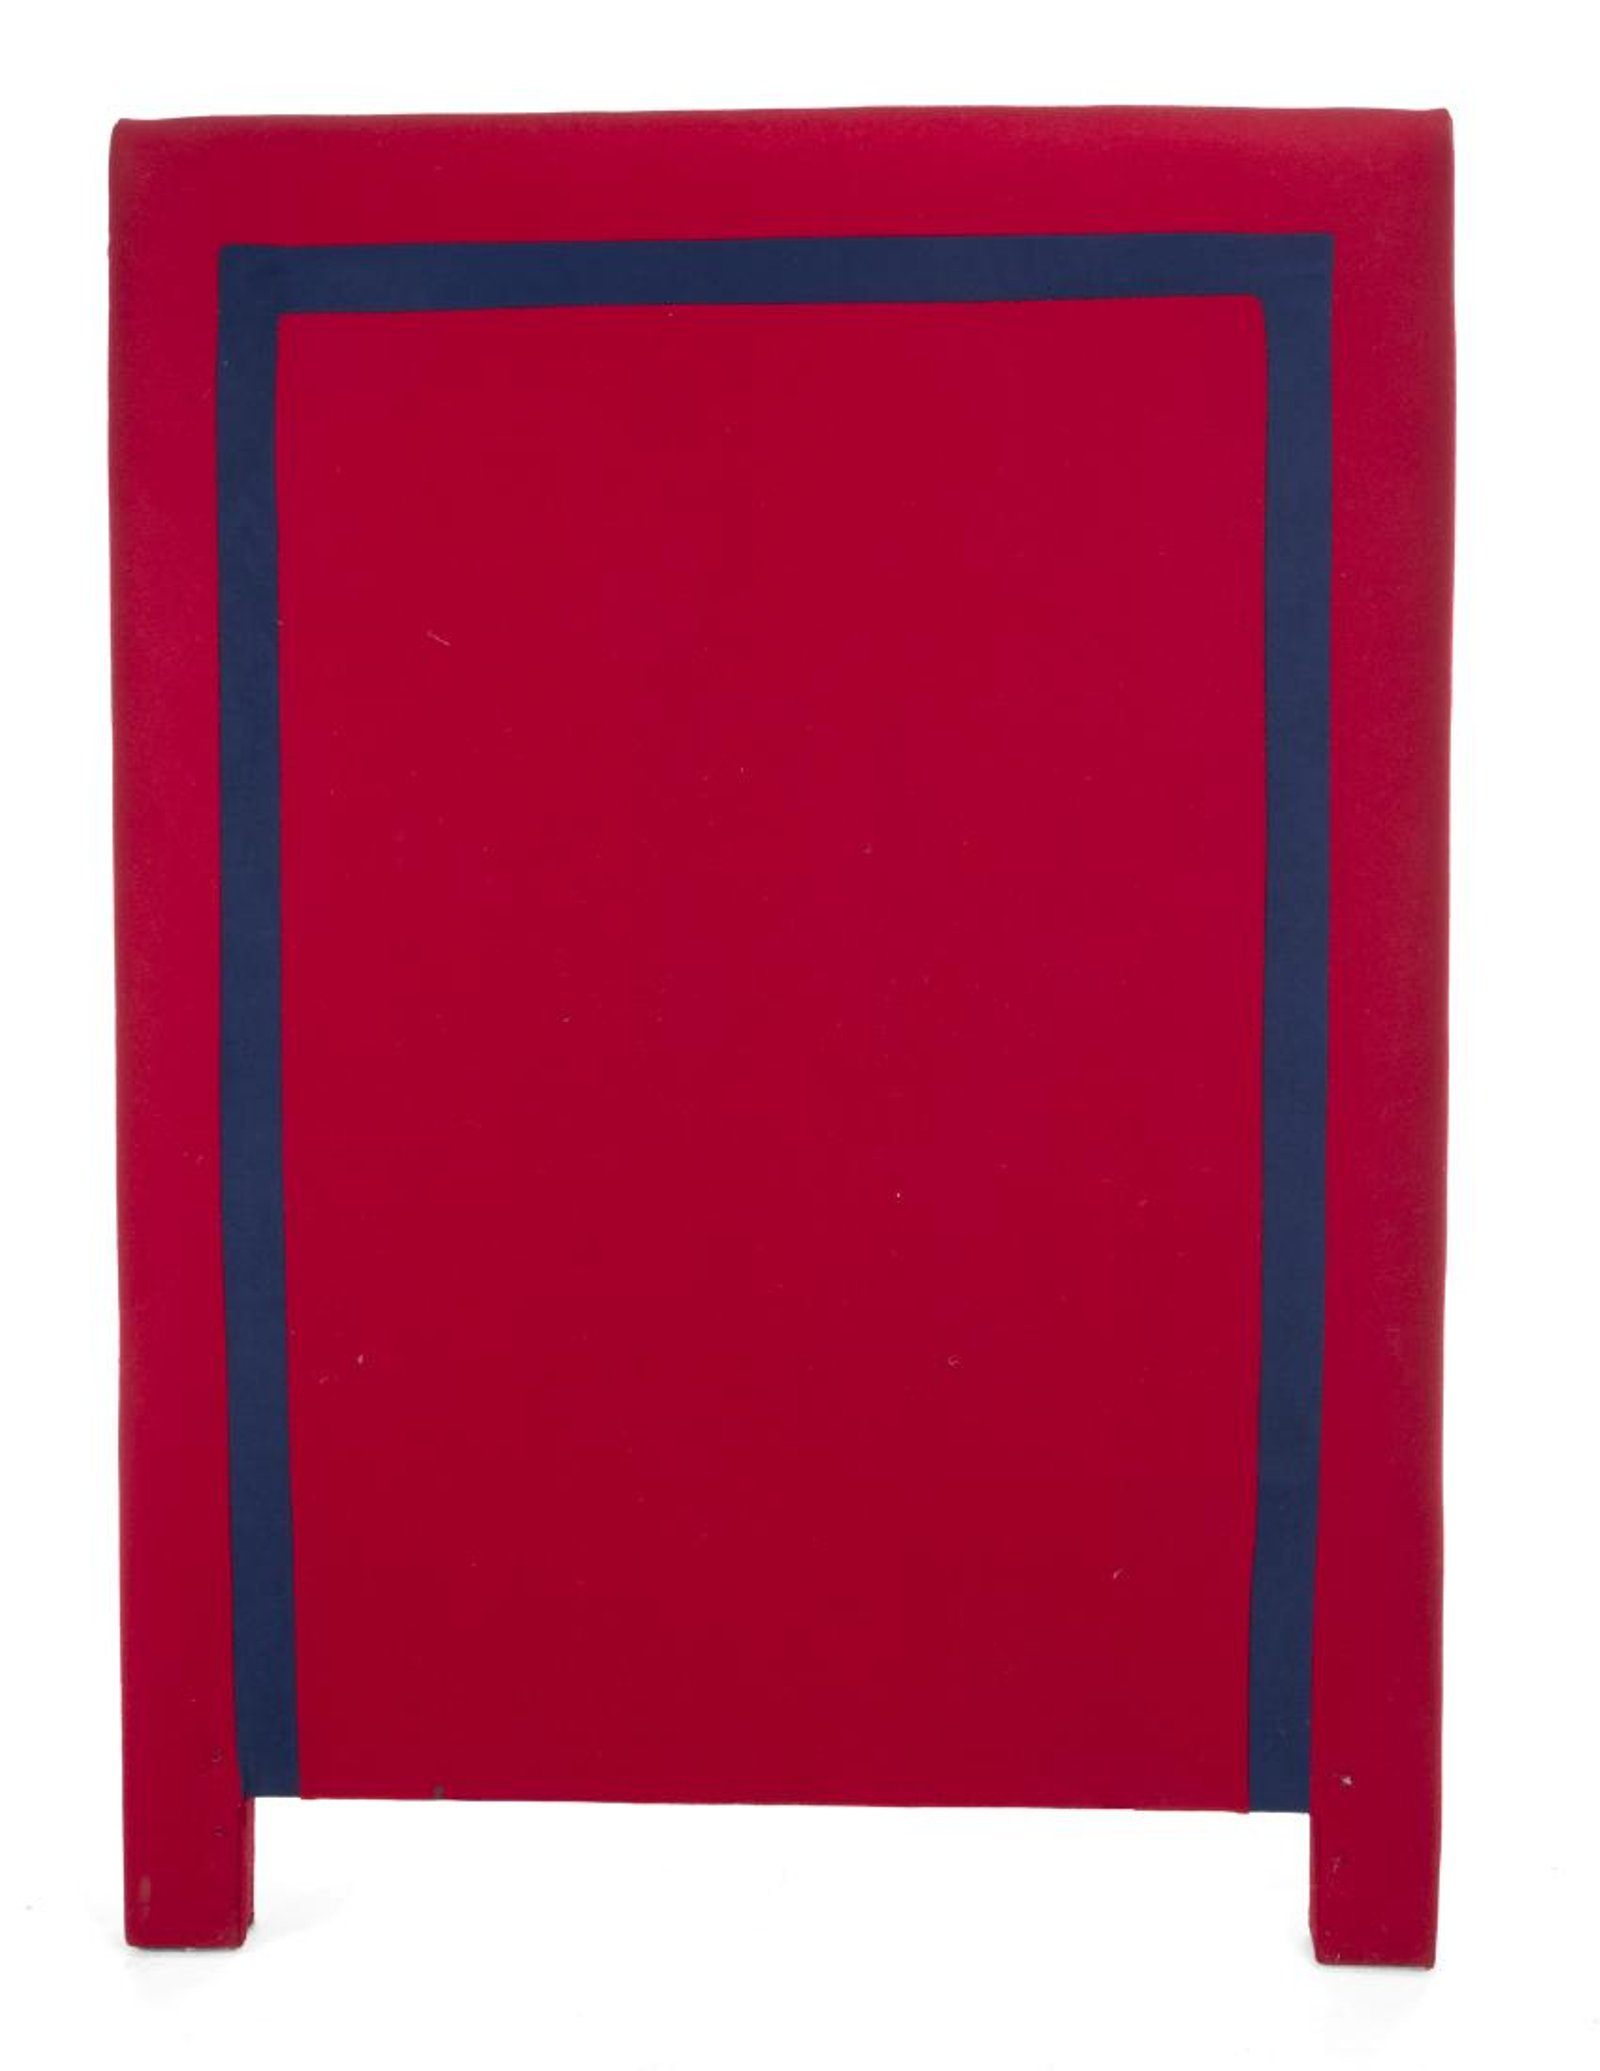 hilfiger_red_upholstered_headboards.jpg